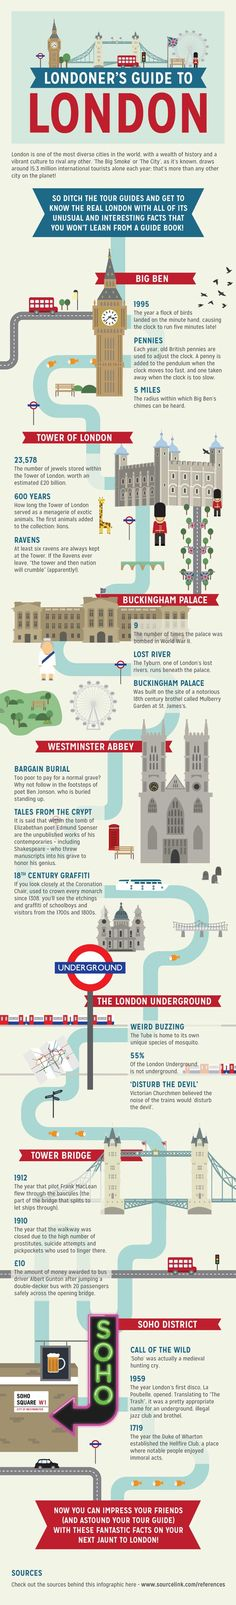 Londoner's Guide To London - Cool Stuff - ShortList Magazine